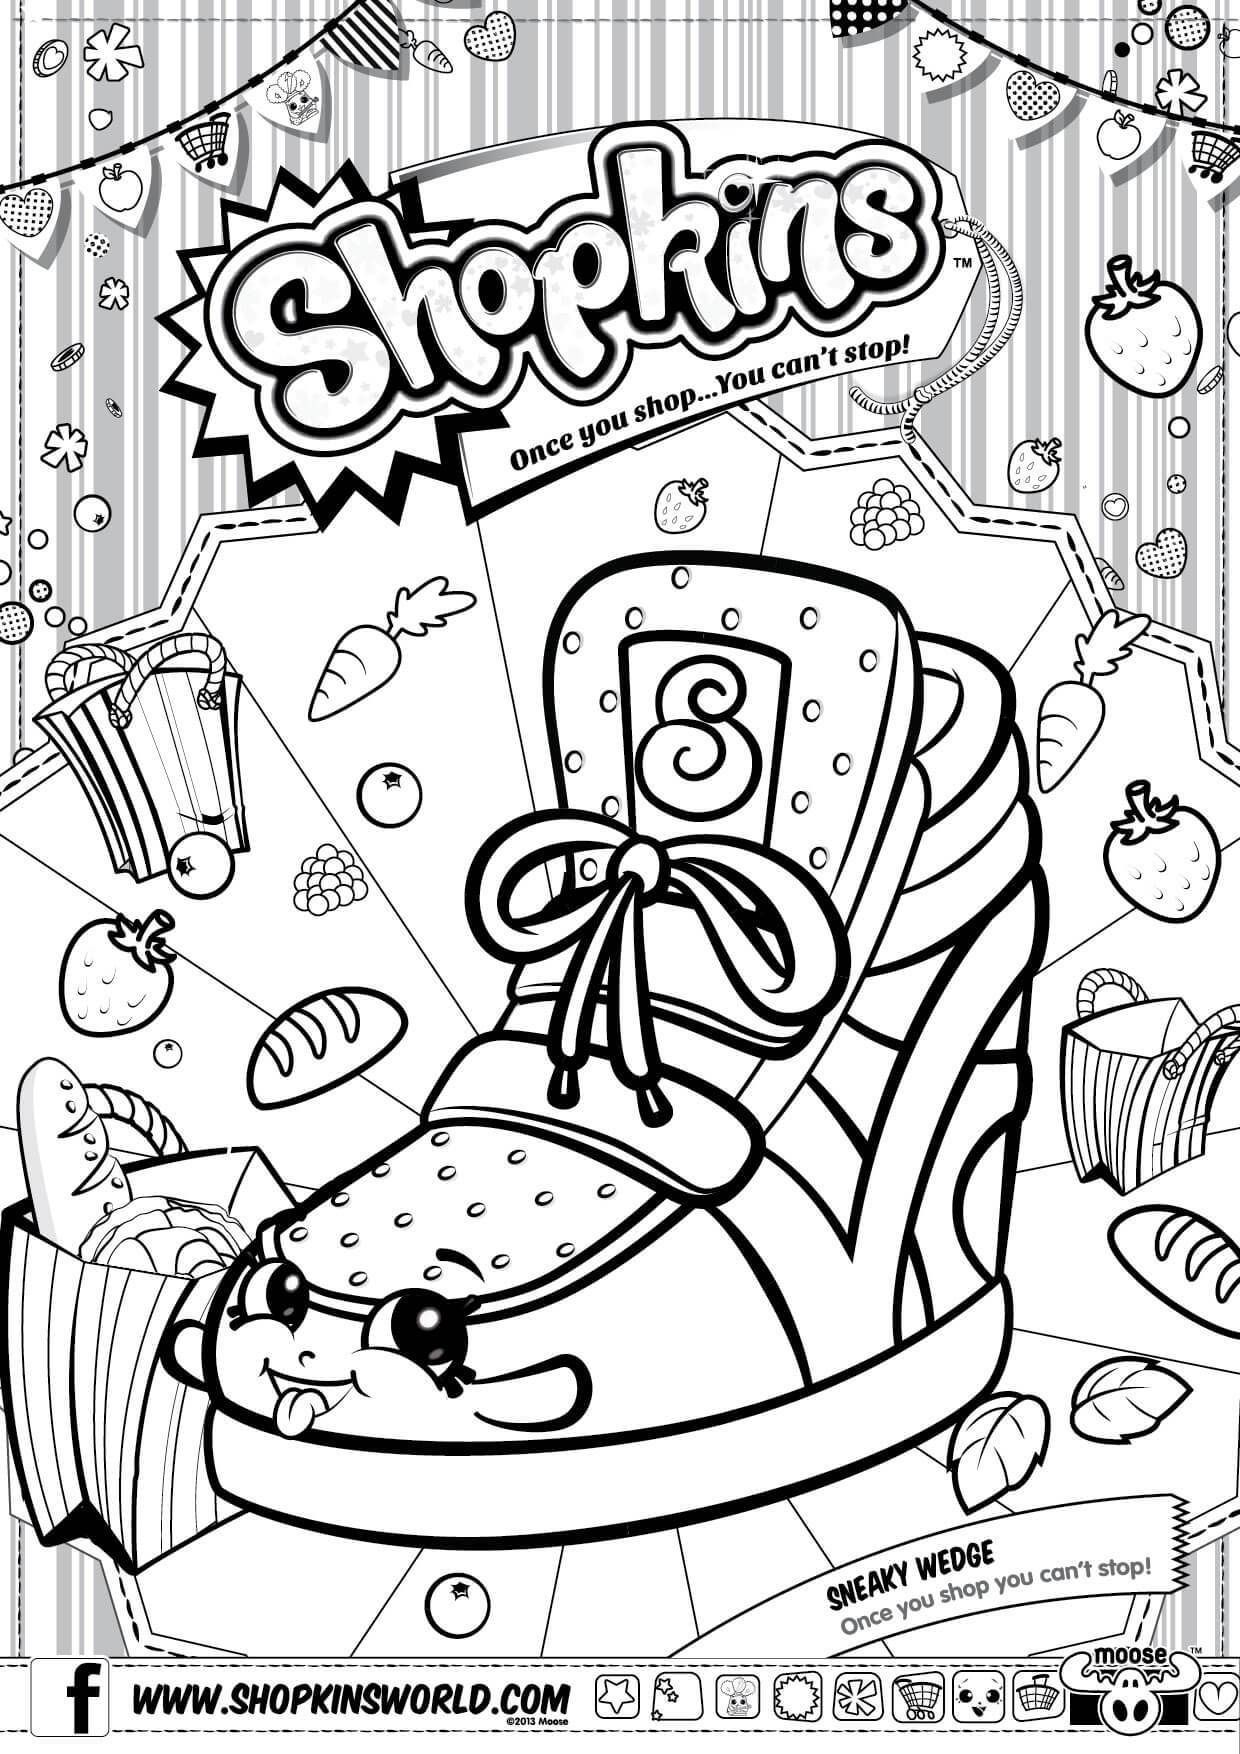 Shopkins Coloring Pages Season 2 Sneaky Wedge Party Shopkins